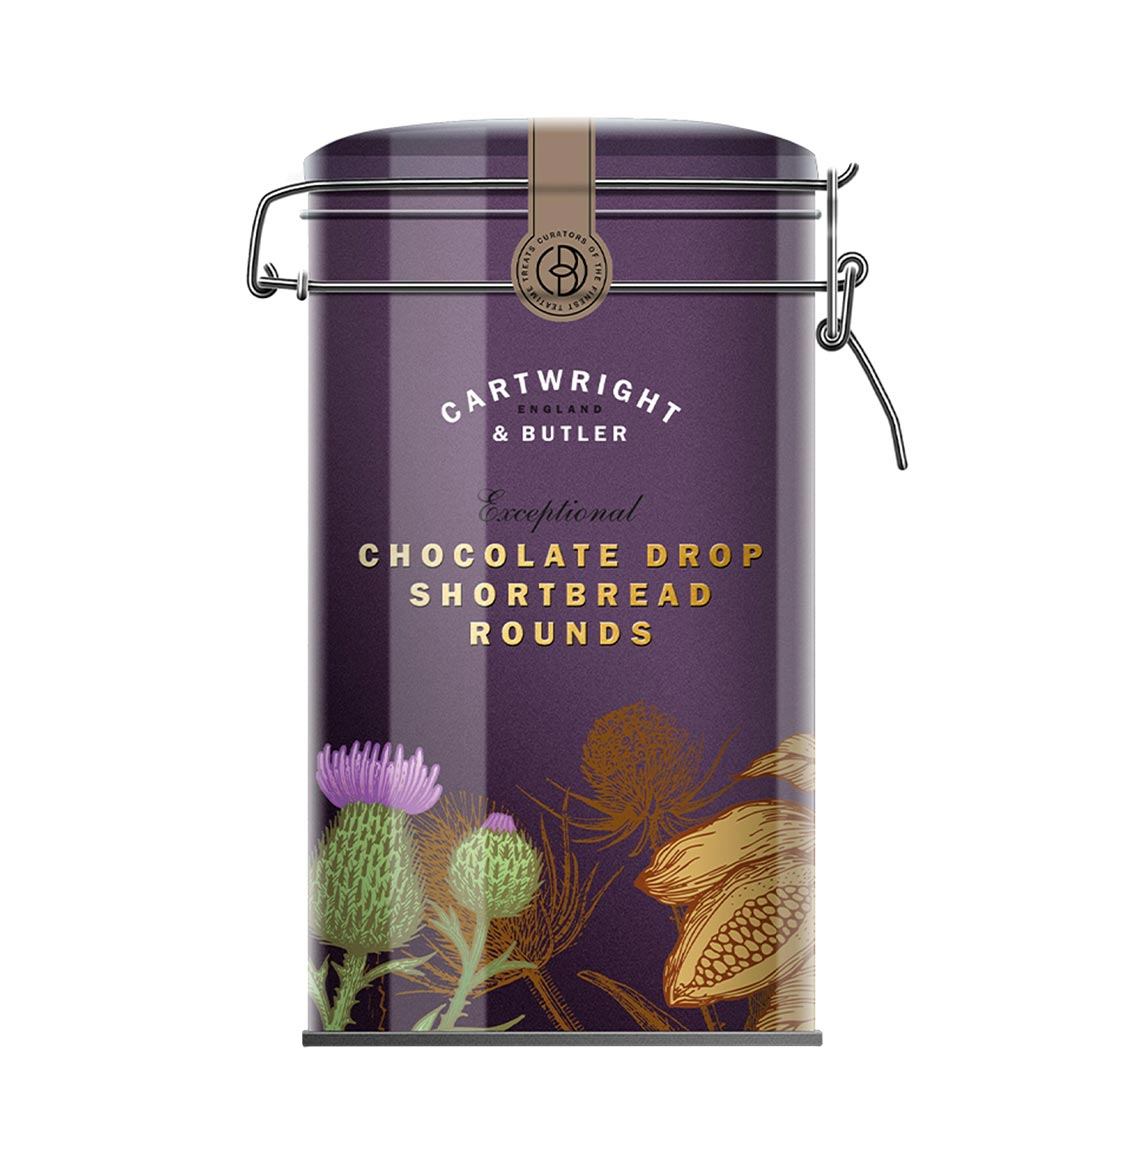 Cartwright and Butler Chocolate Drop Shortbread Rounds 200g